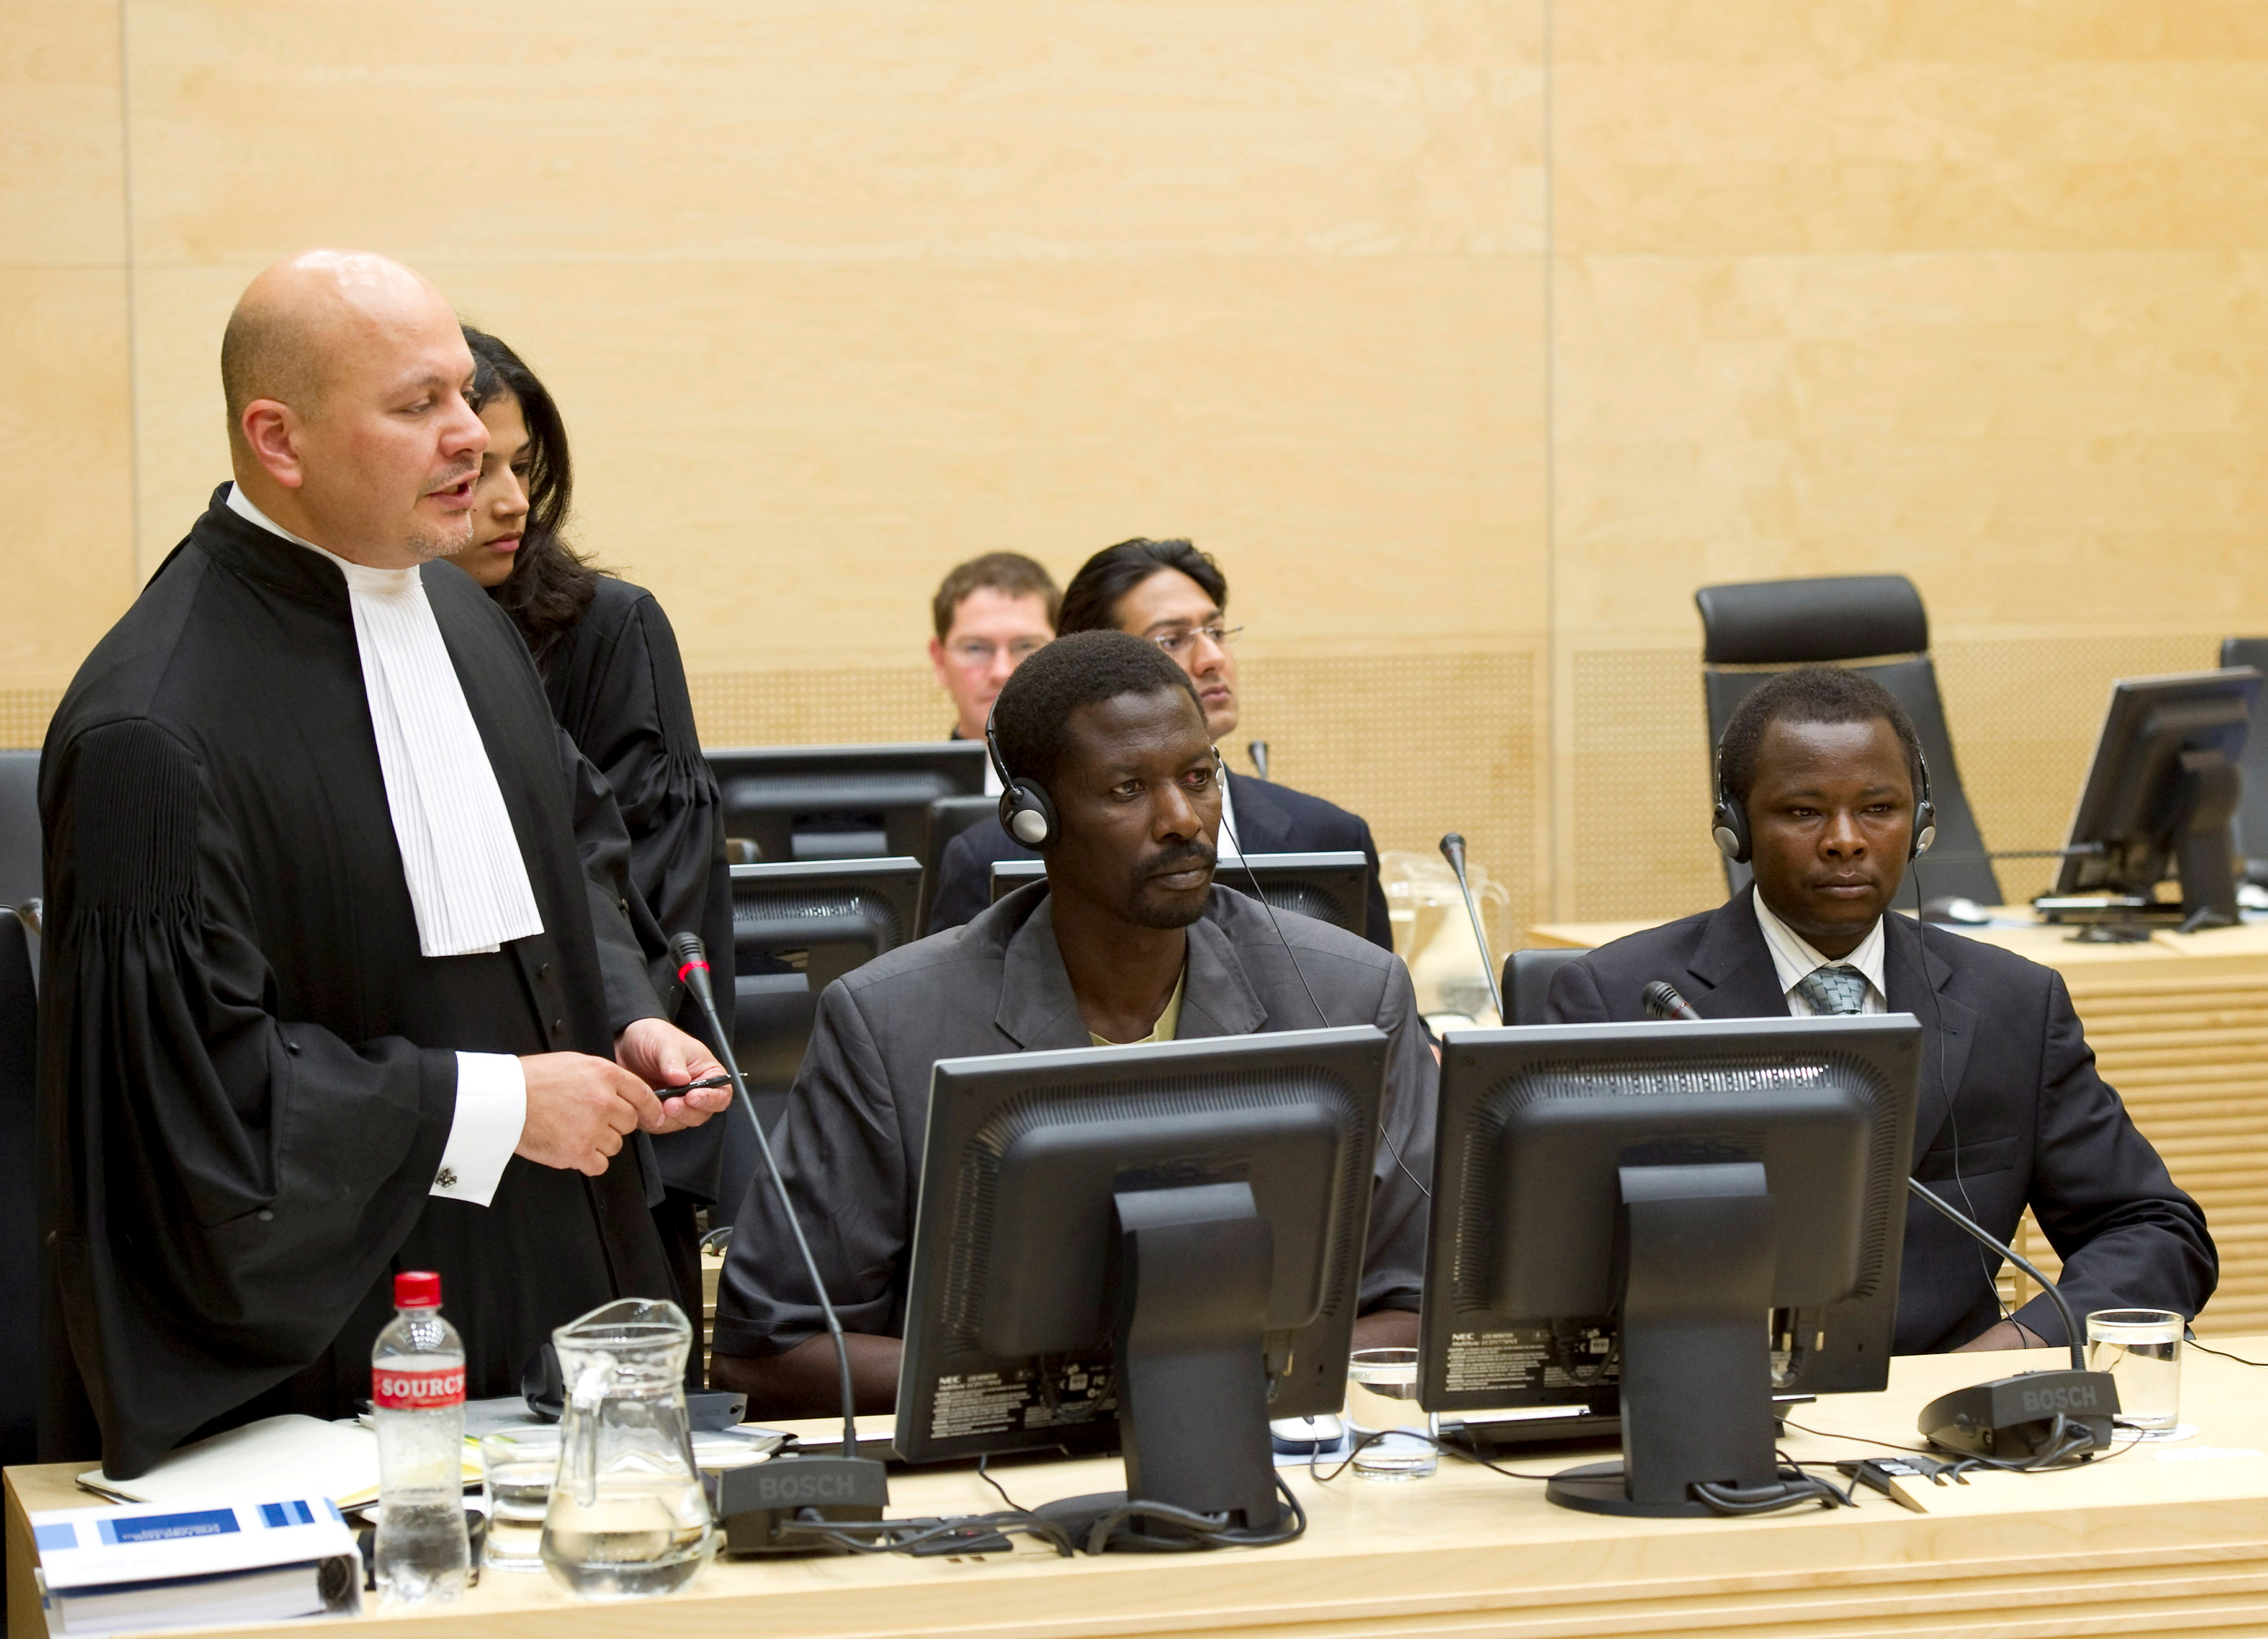 Karim Khan (L), the lawyer for Abdallah Banda Abakaer Nourain (C) and Saleh Mohammed Jerbo Jamus (R), both suspected of having committed war crimes in Darfur, speaks at the International Criminal Court in The Hague June 17, 2010. REUTERS/Toussaint Kluiters/United Photos/File Photo